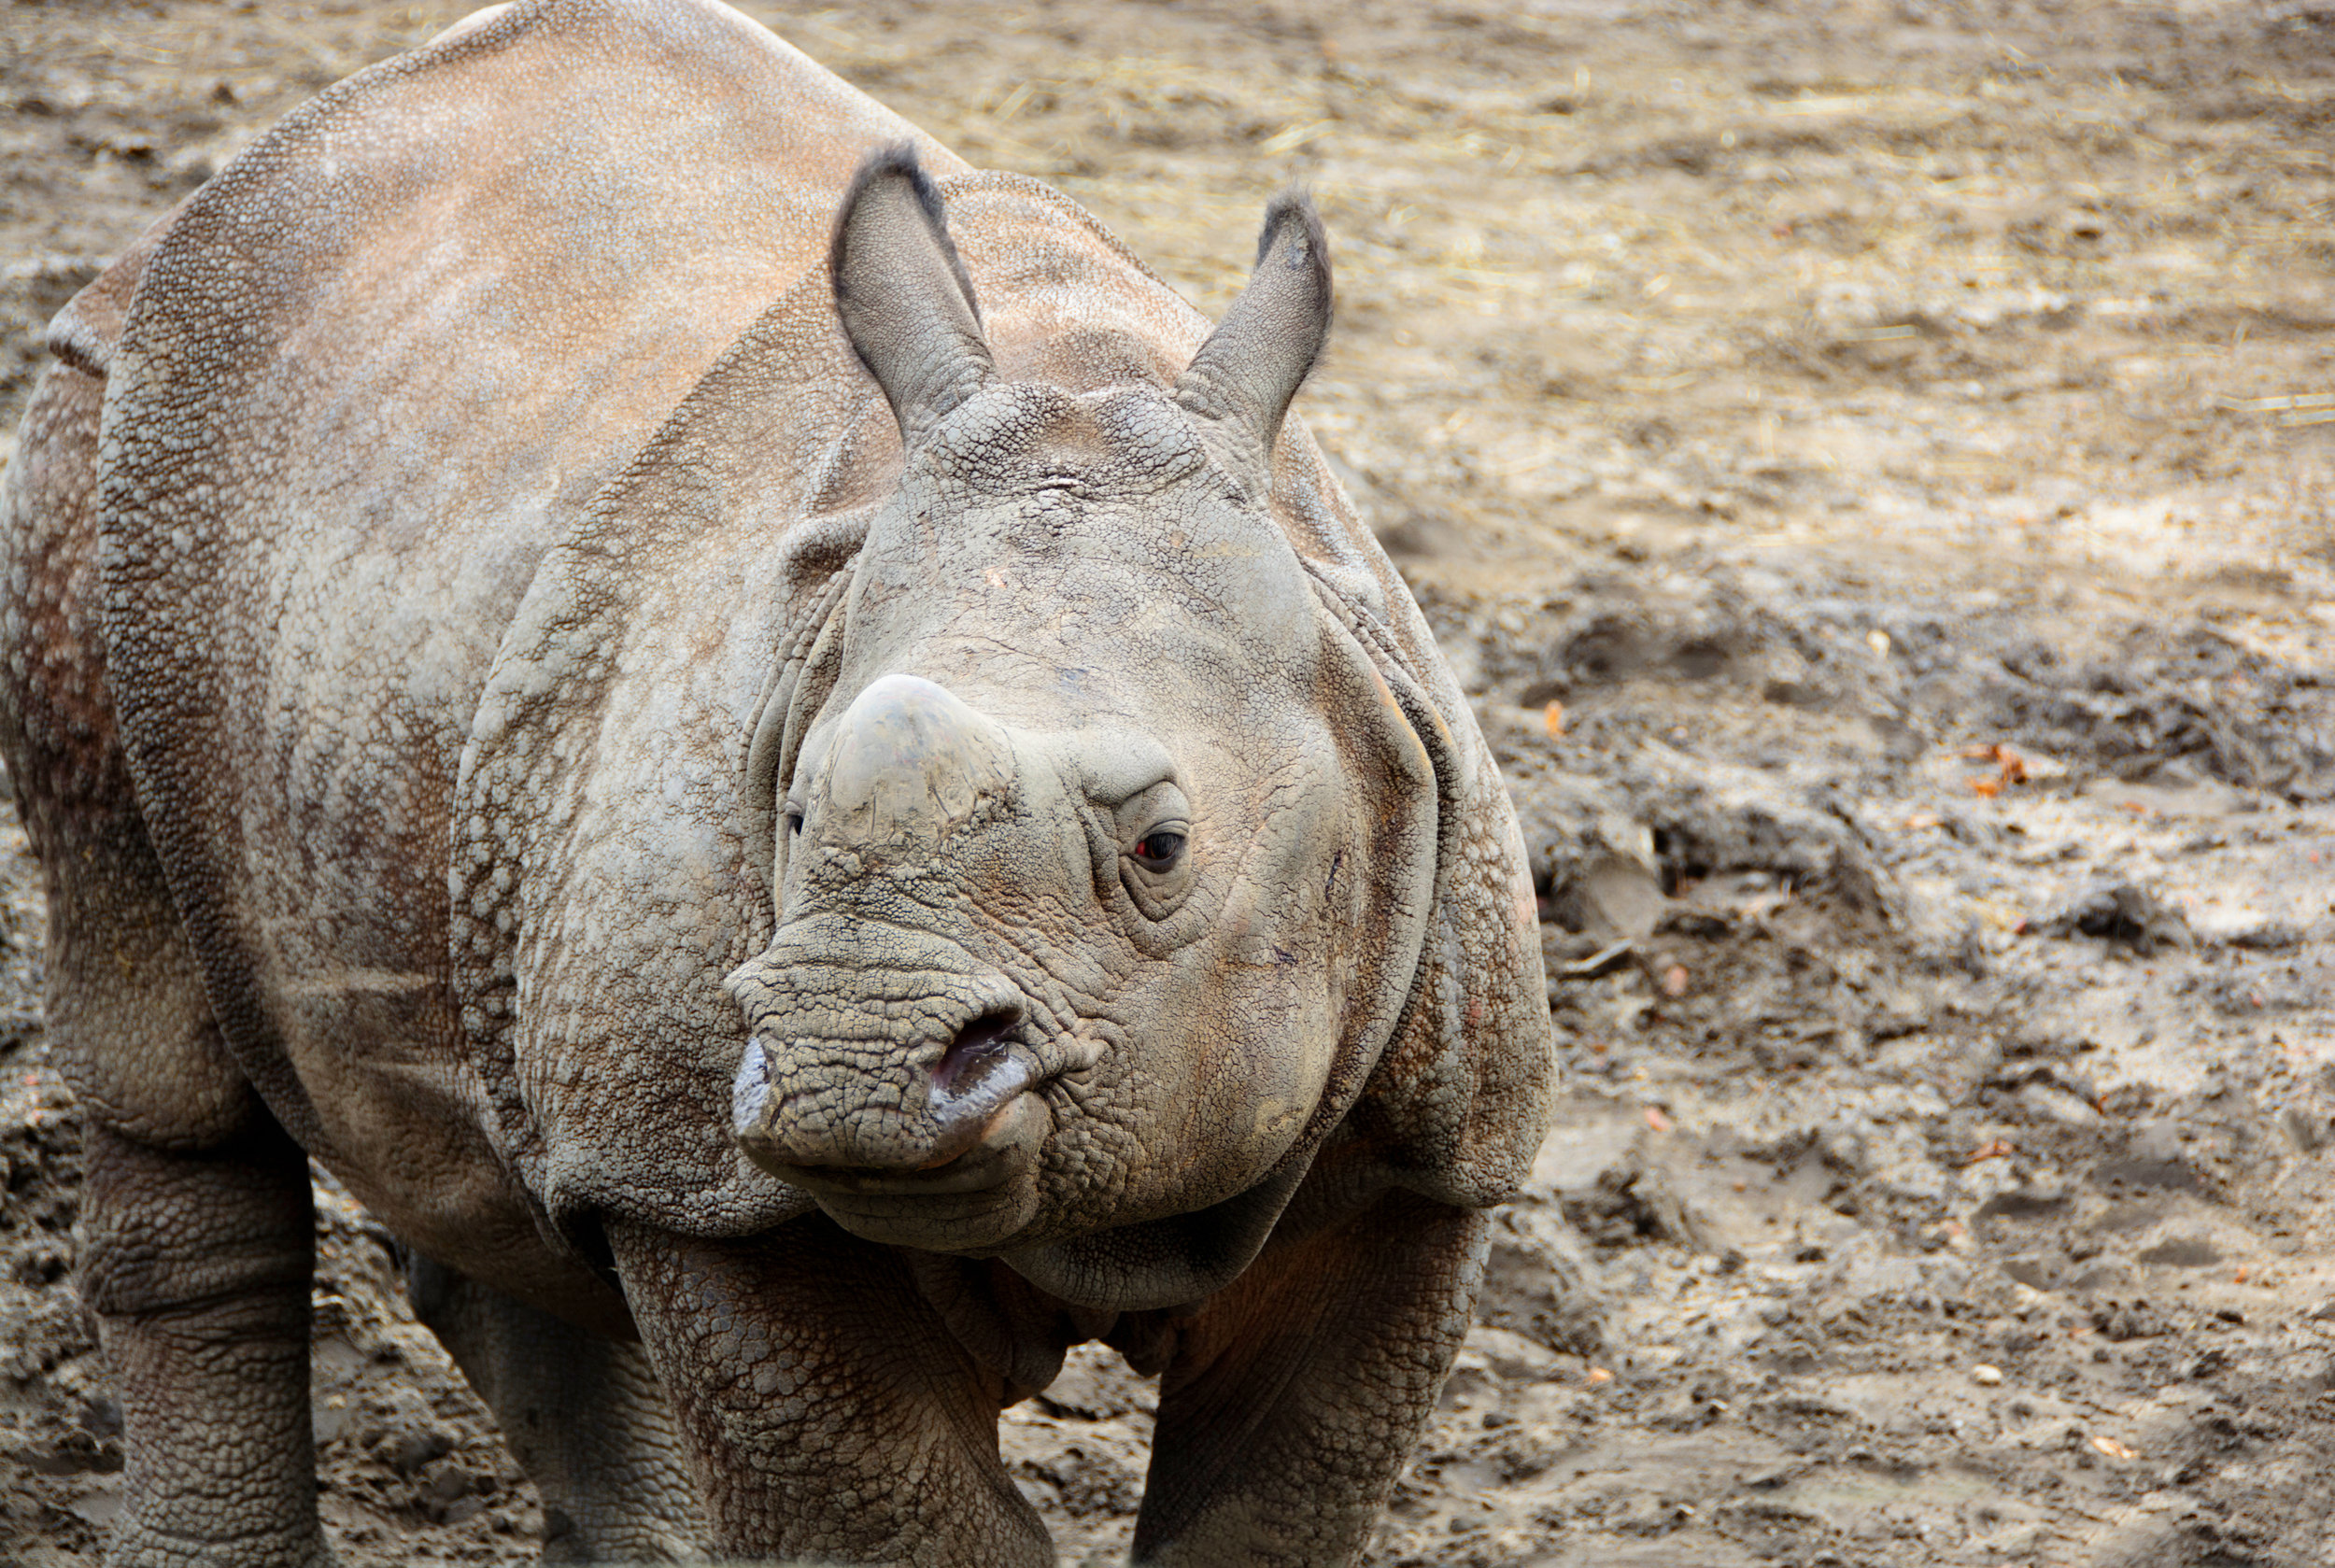 Beautiful Indian One Horned Rhinoceros. Curious young rhino.